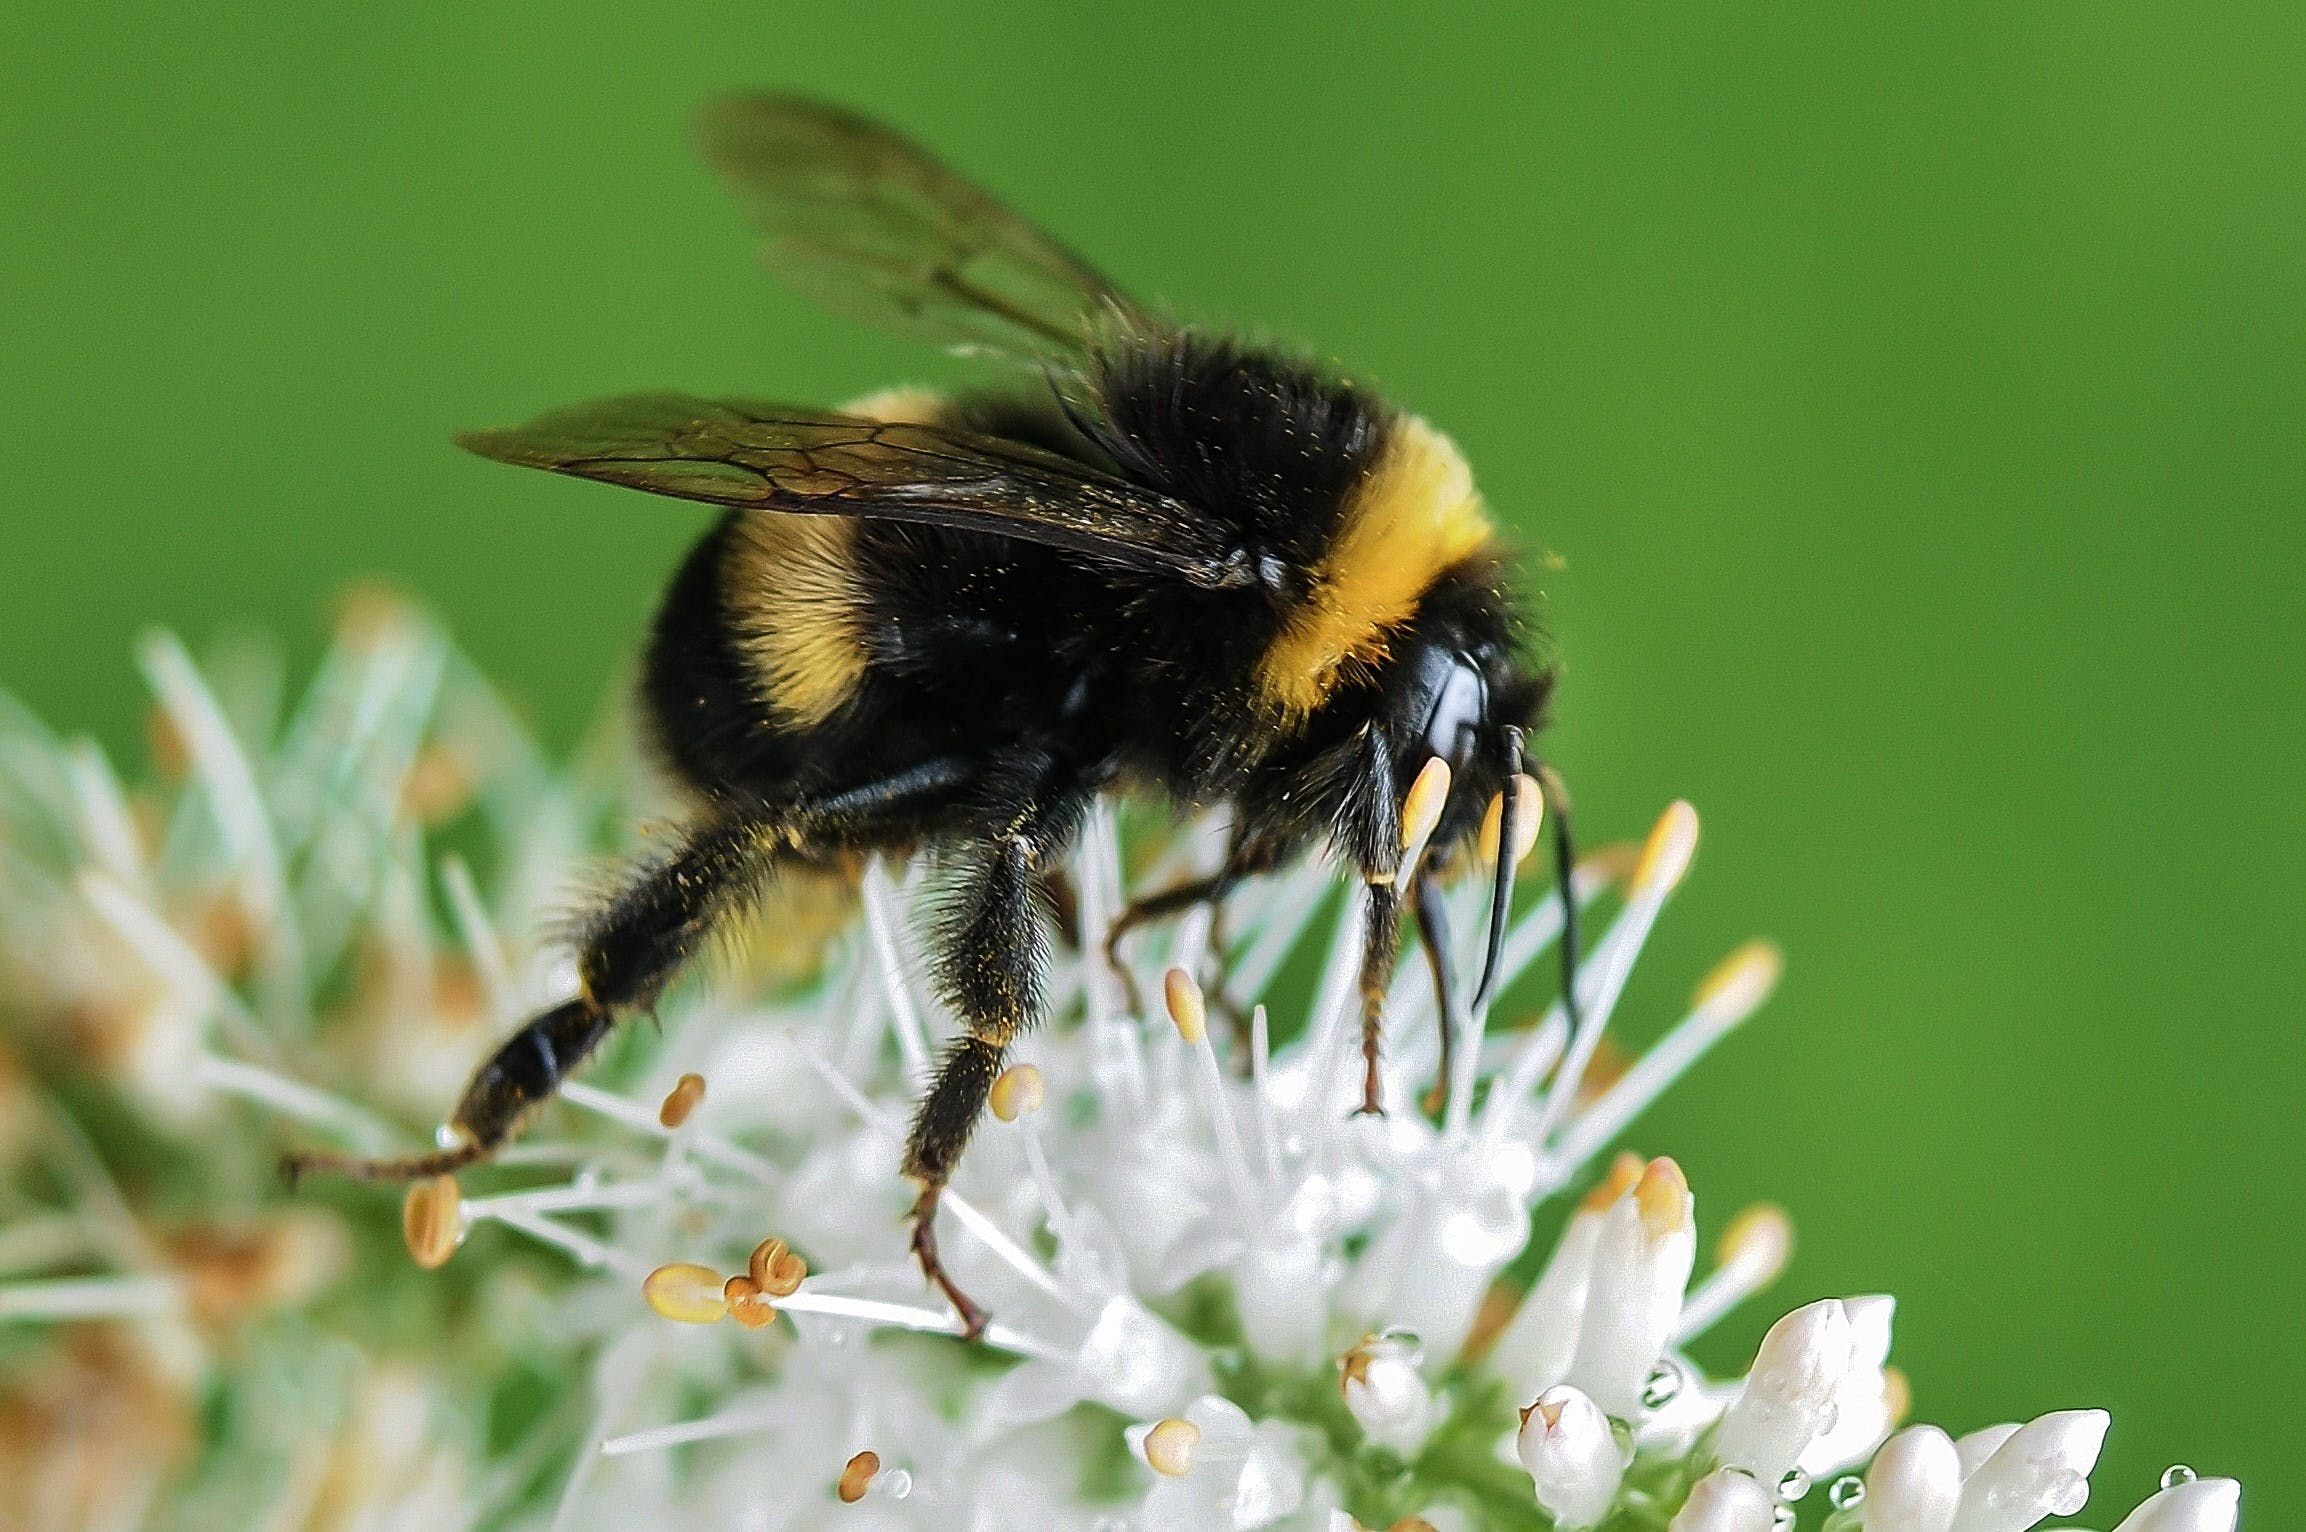 Closeup Photo of Bumble Bee on White Flowers